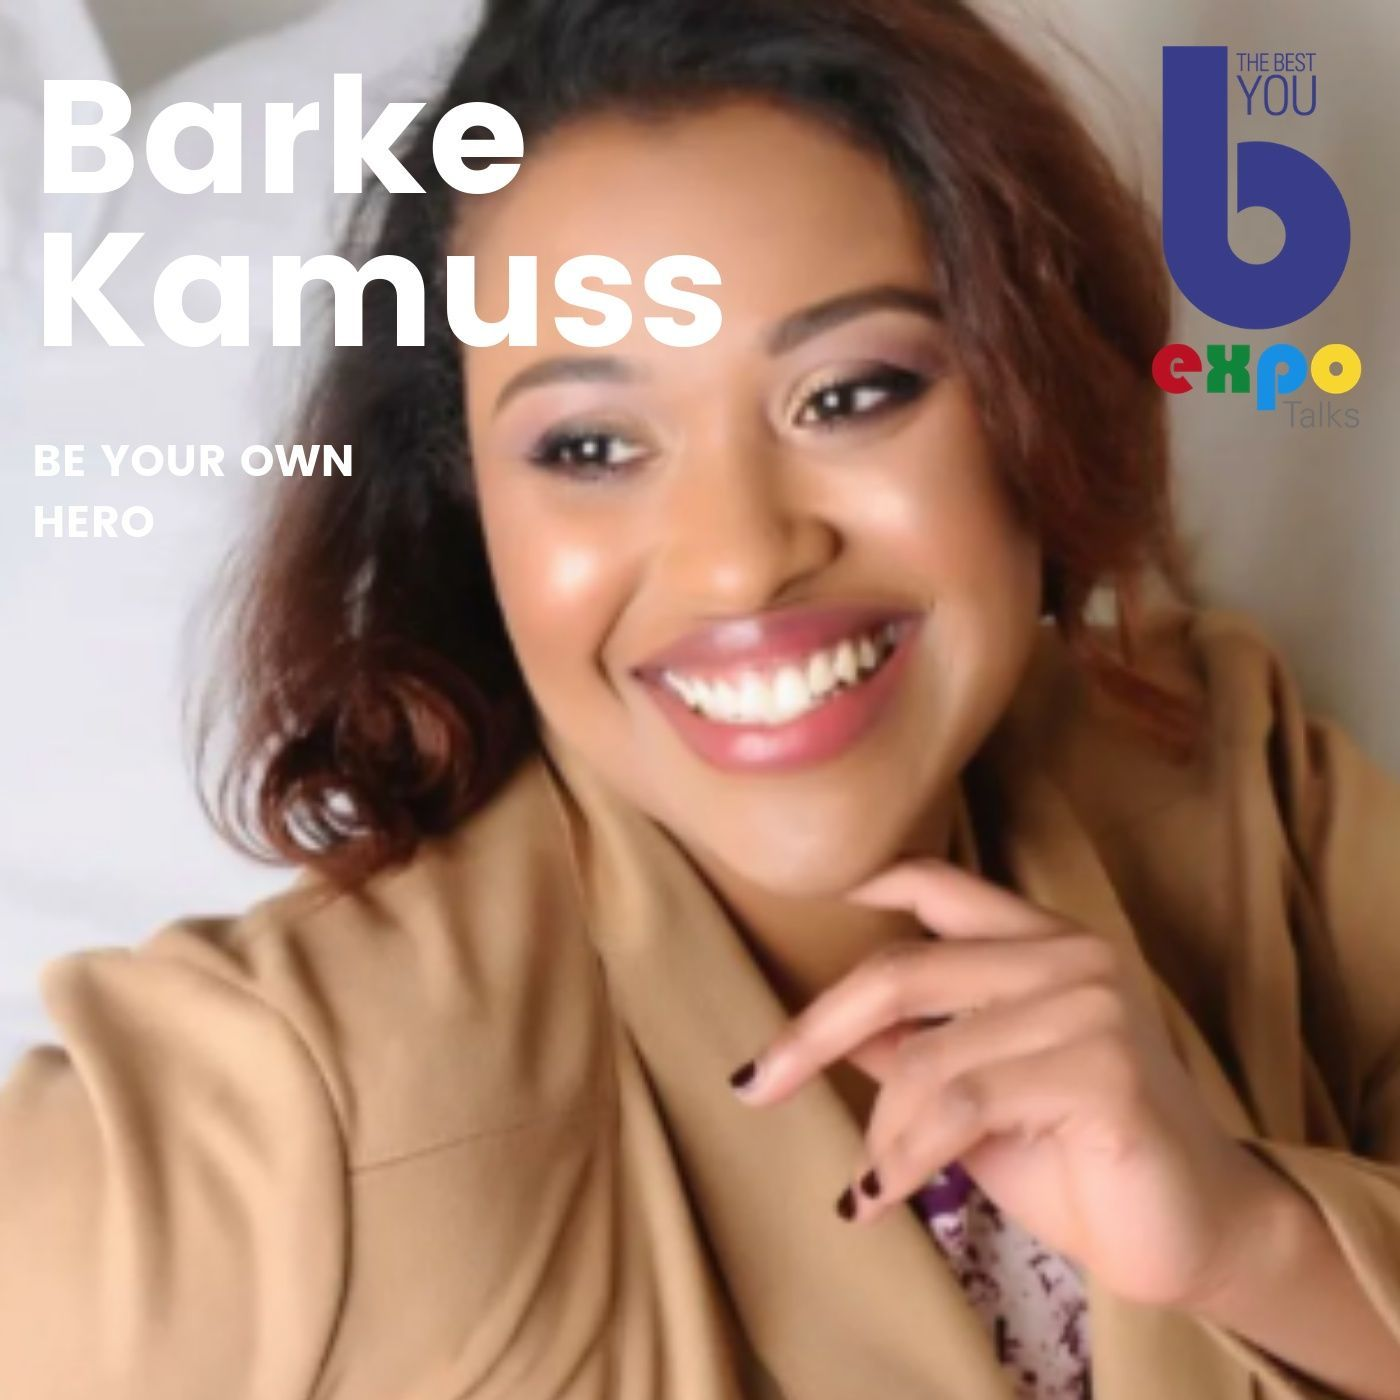 Listen to Barke Kramuss at The Best You EXPO